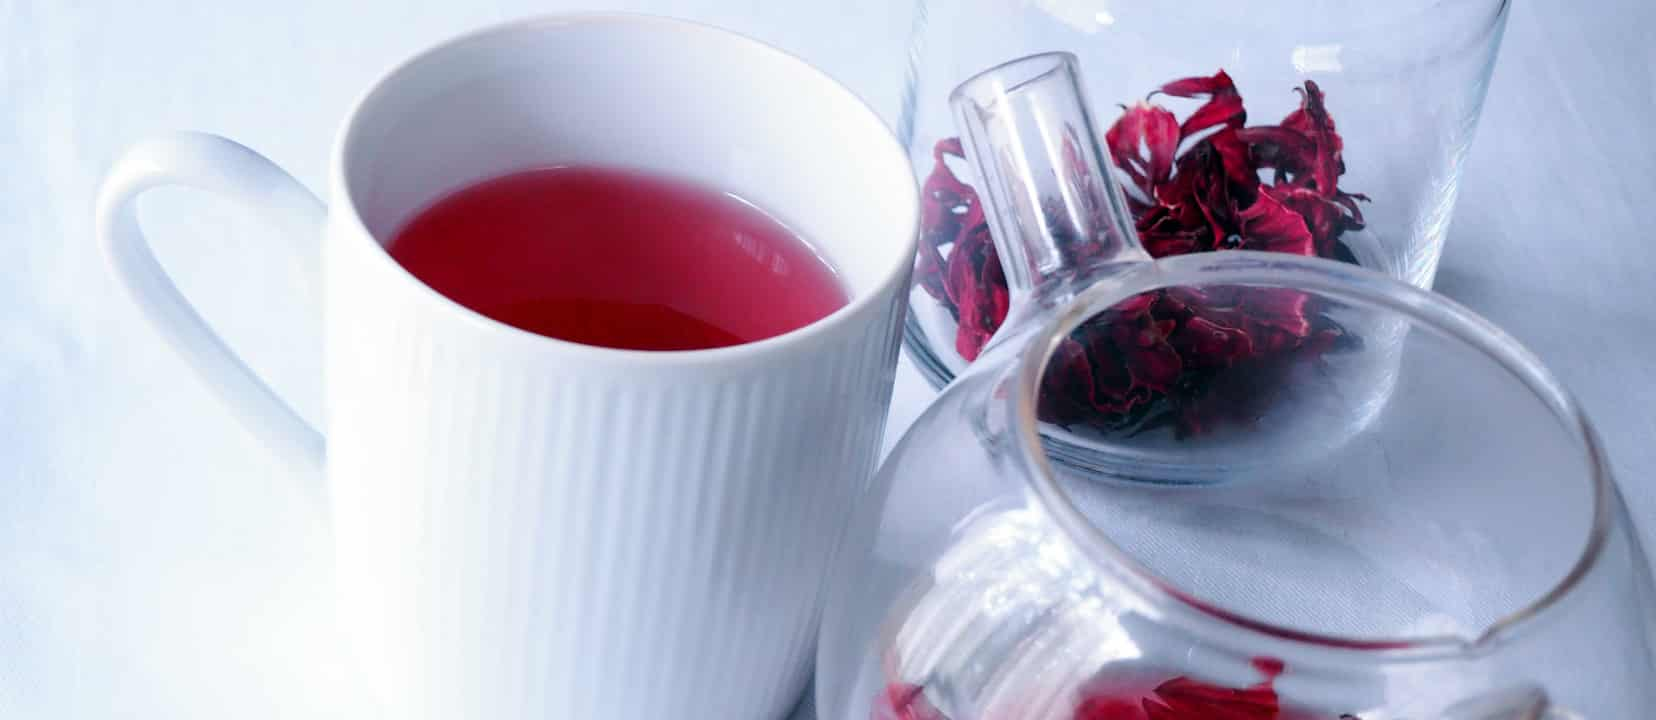 Protecting Teeth From Hibiscus Tea